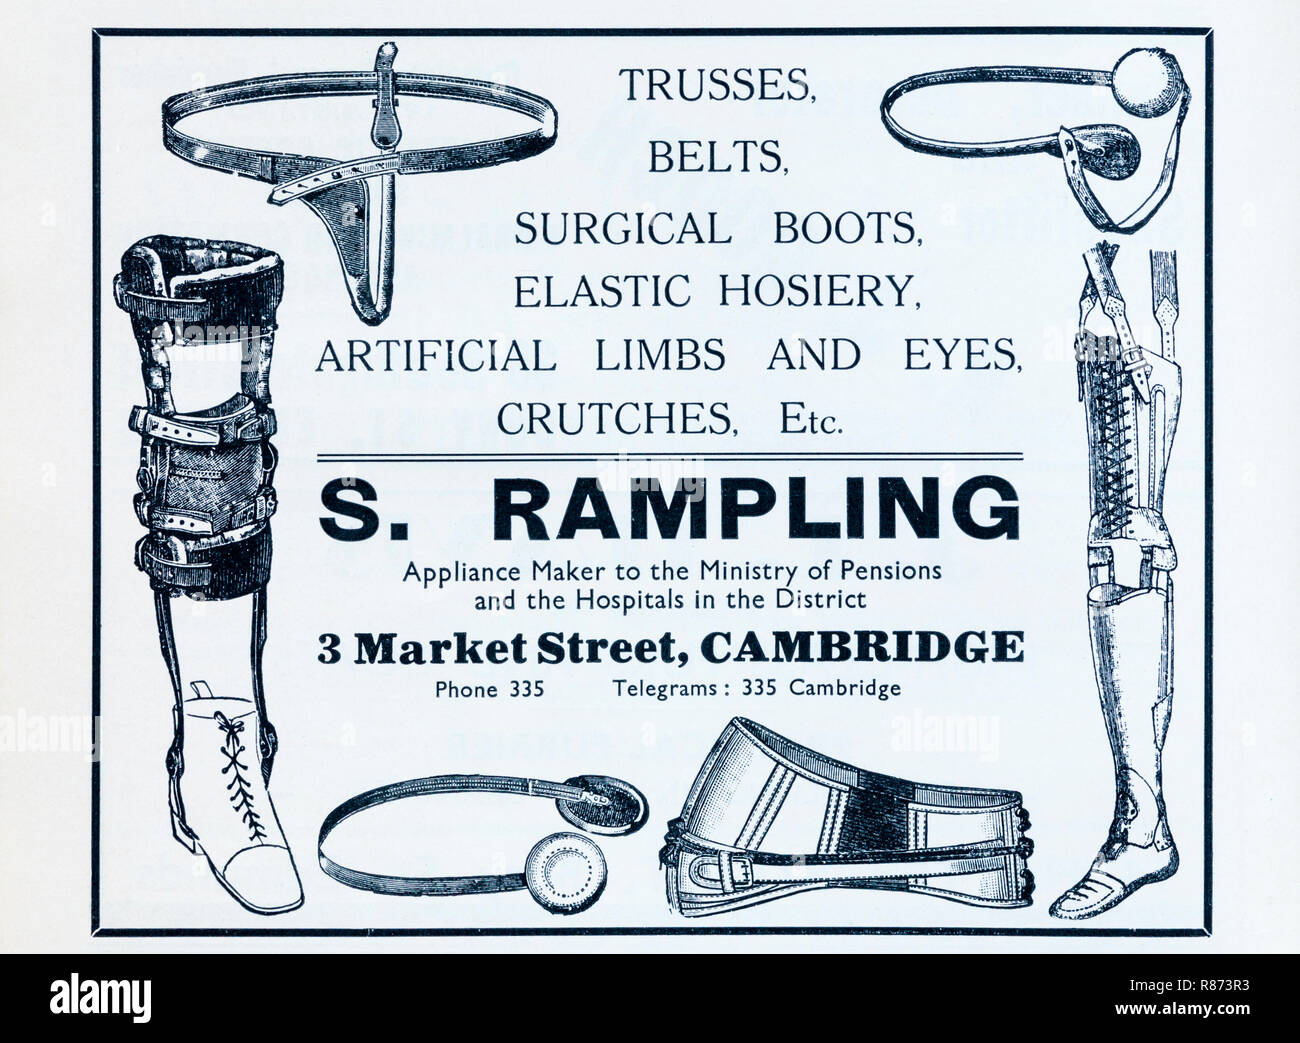 A 1930s advertisement for a maker of surgical appliances. - Stock Image